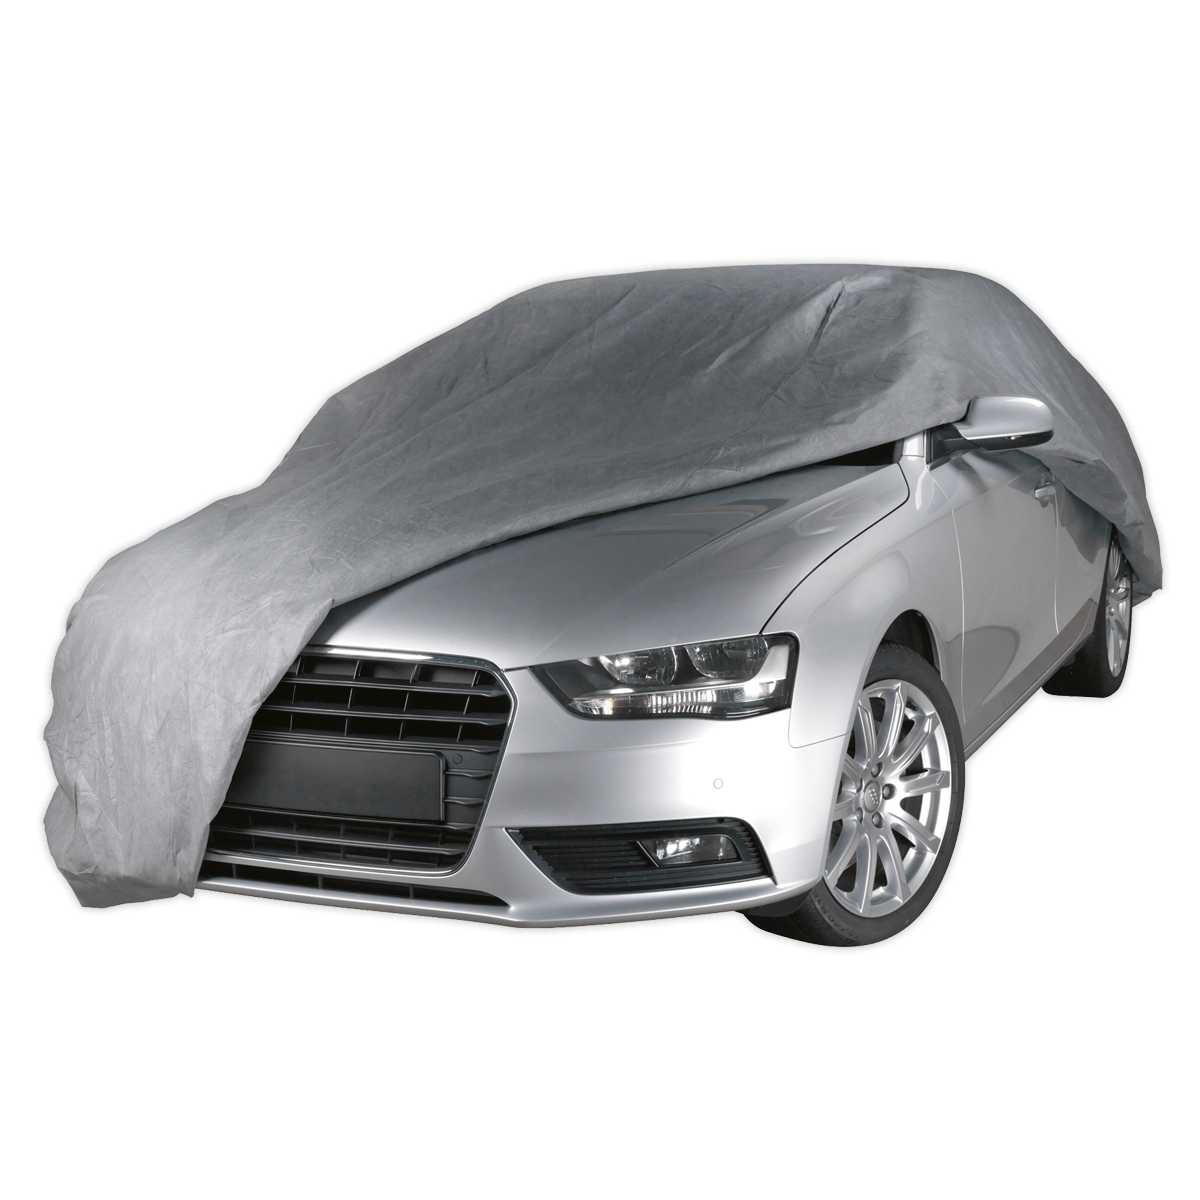 Sealey All Seasons Car Cover 3-Layer - Large SCCL